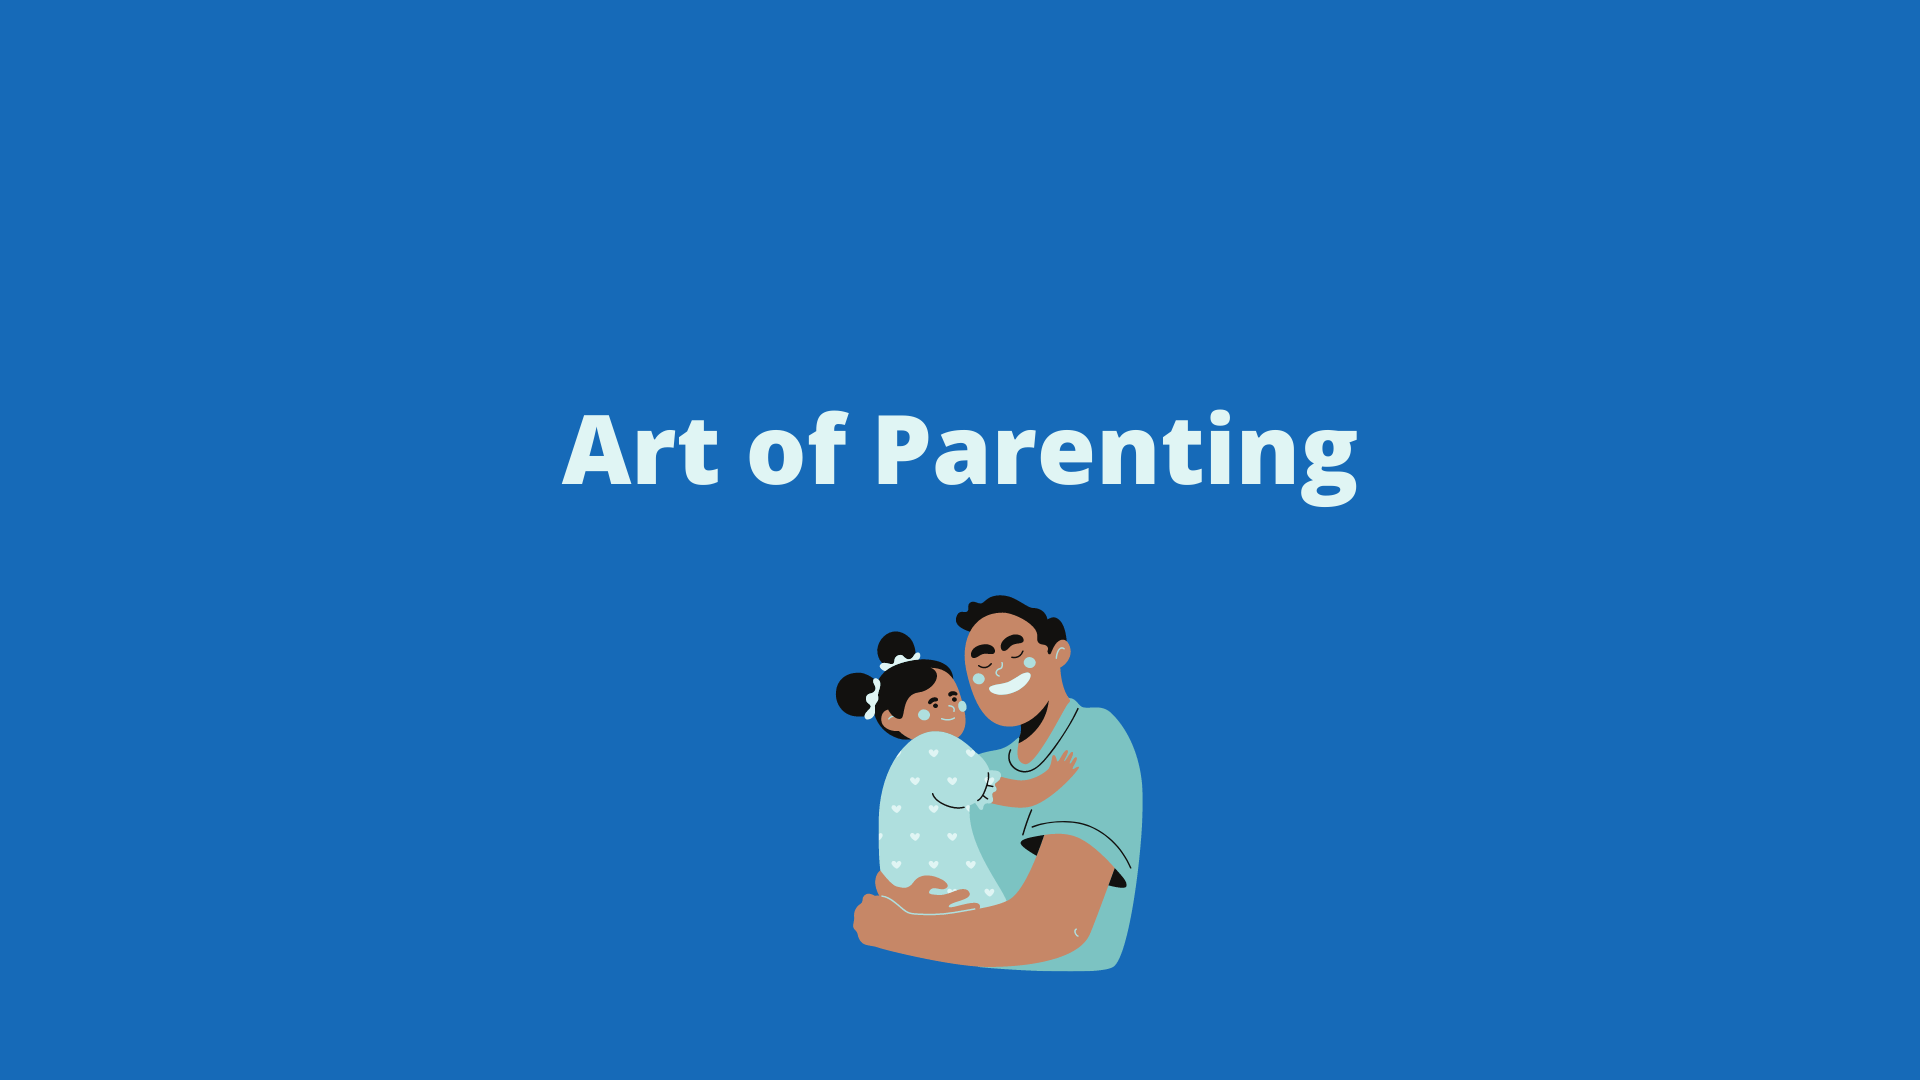 The Art of Parenting You May Not Know